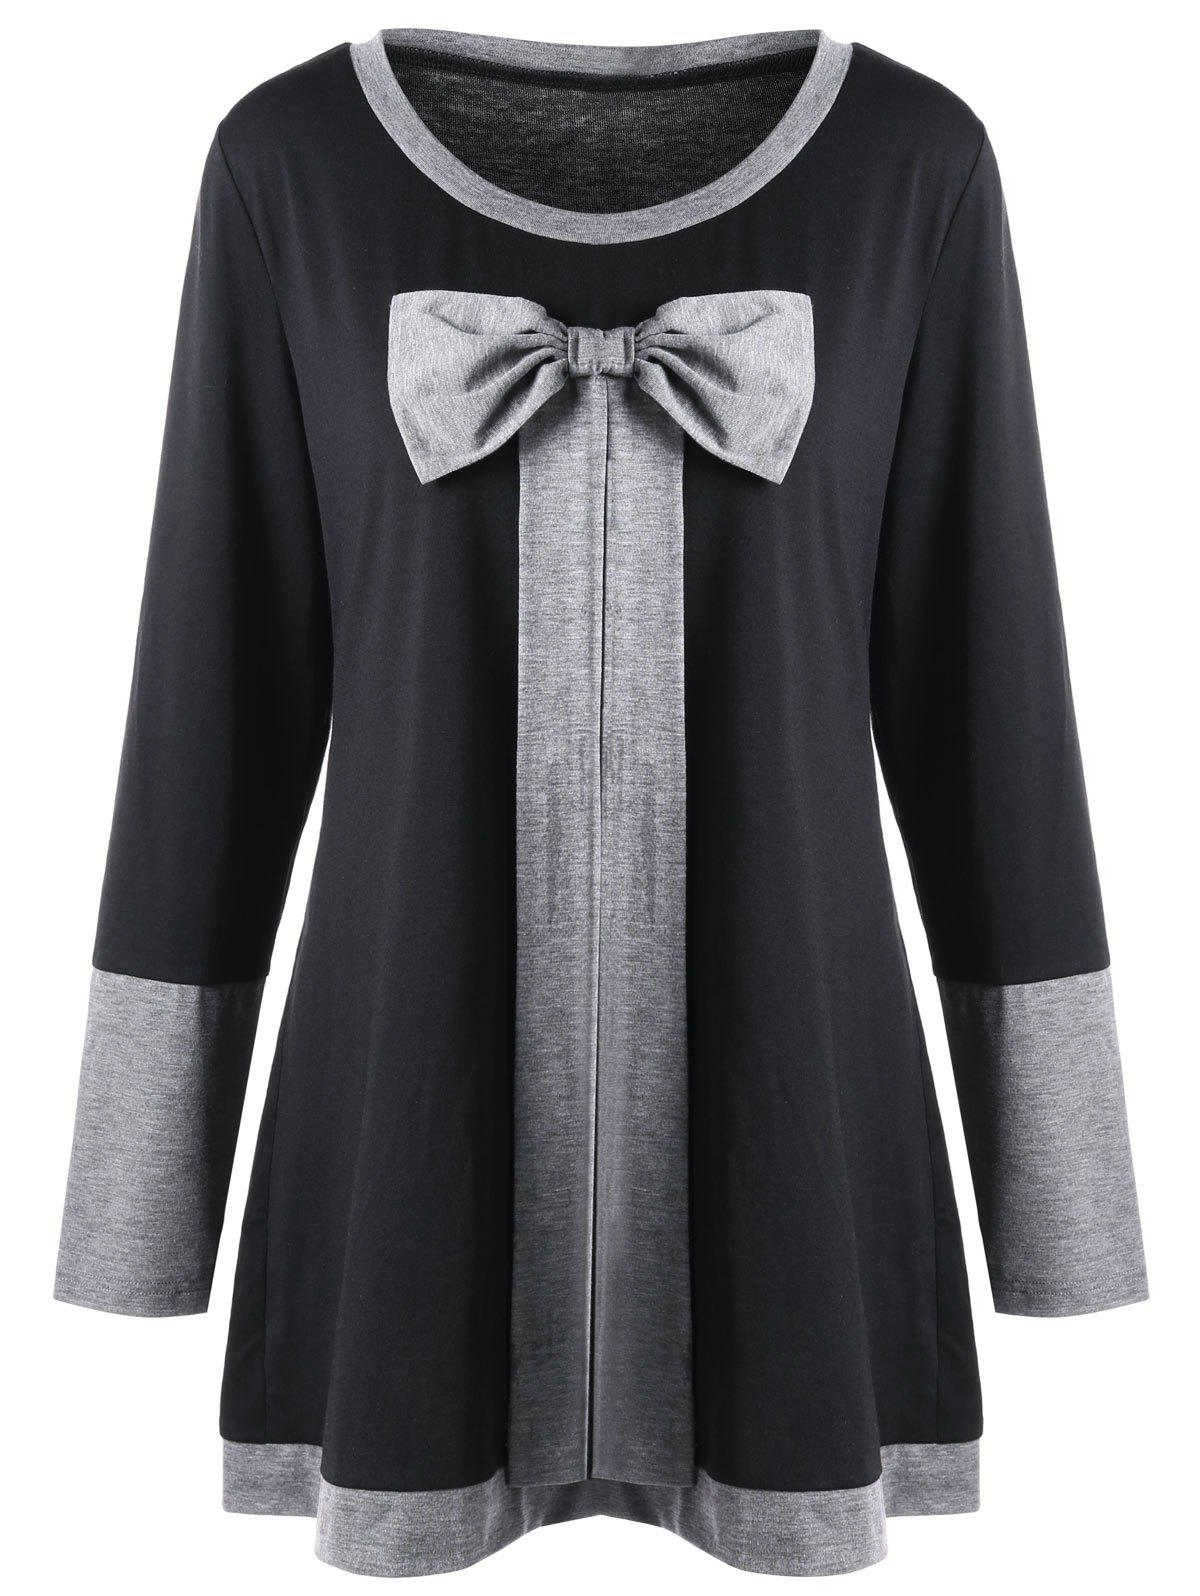 Plus Size Bowknot Embellished Tunic Top - BLACK XL